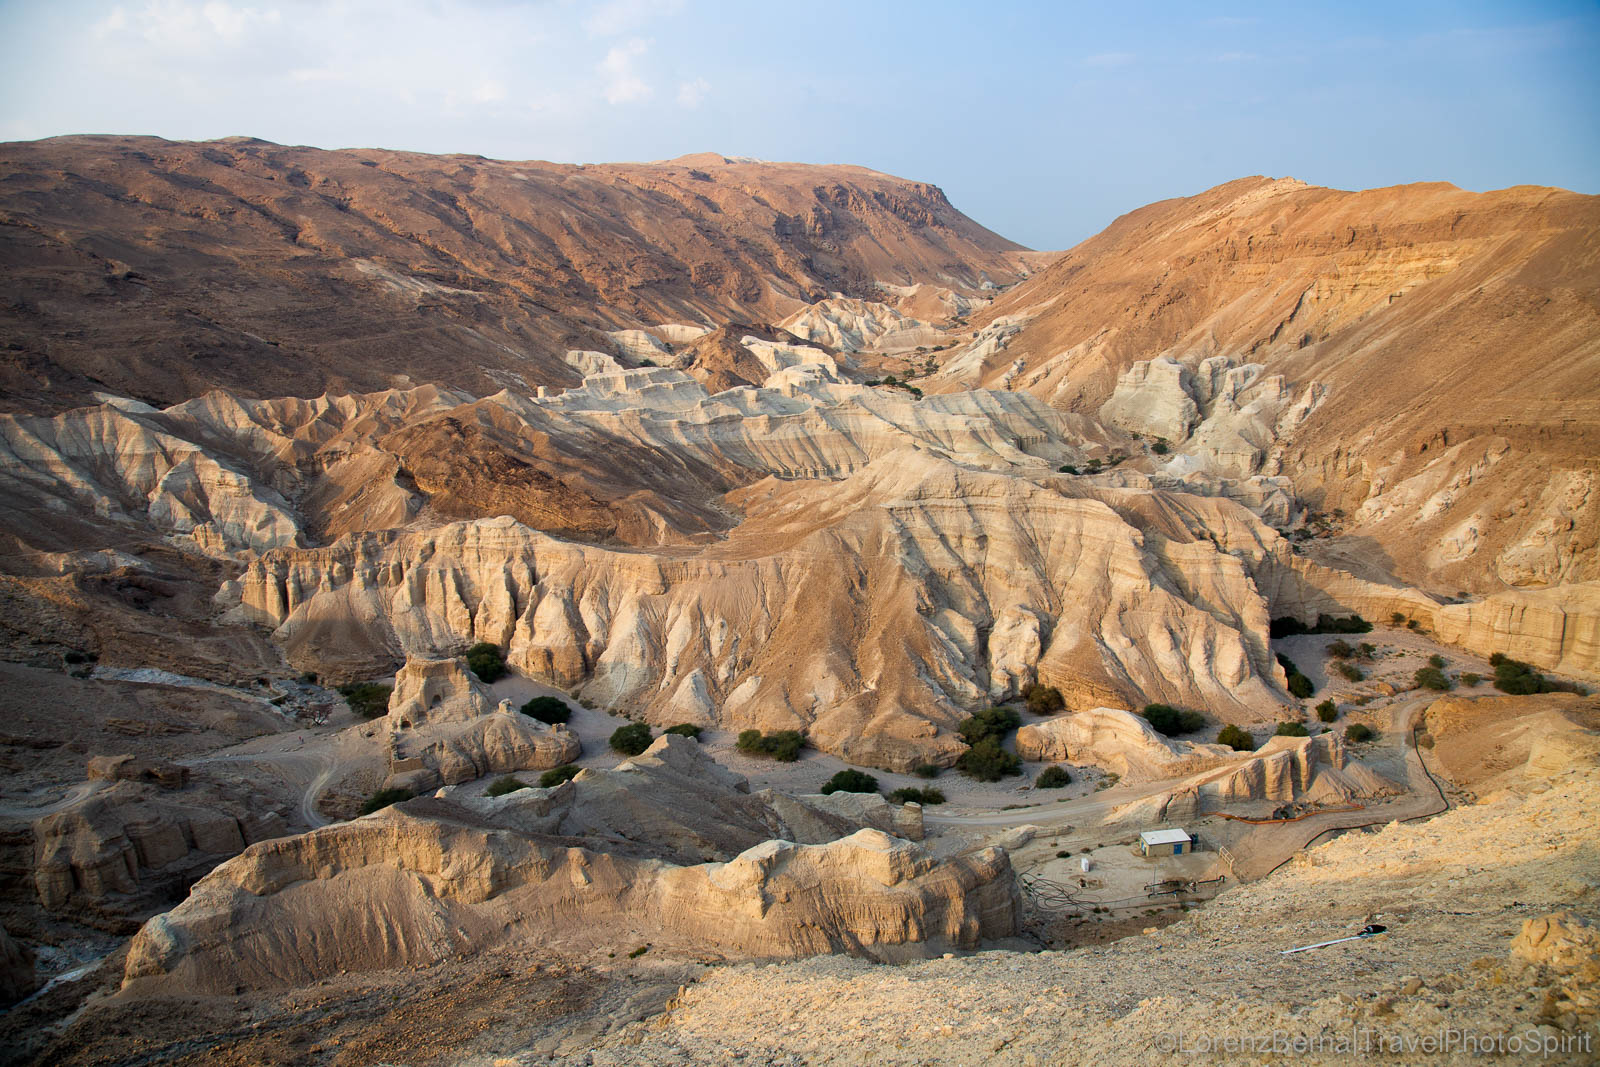 The canyons and rocky formations of the Judean Desert, hosting ruins of ancient villages and/or camps, Israel.